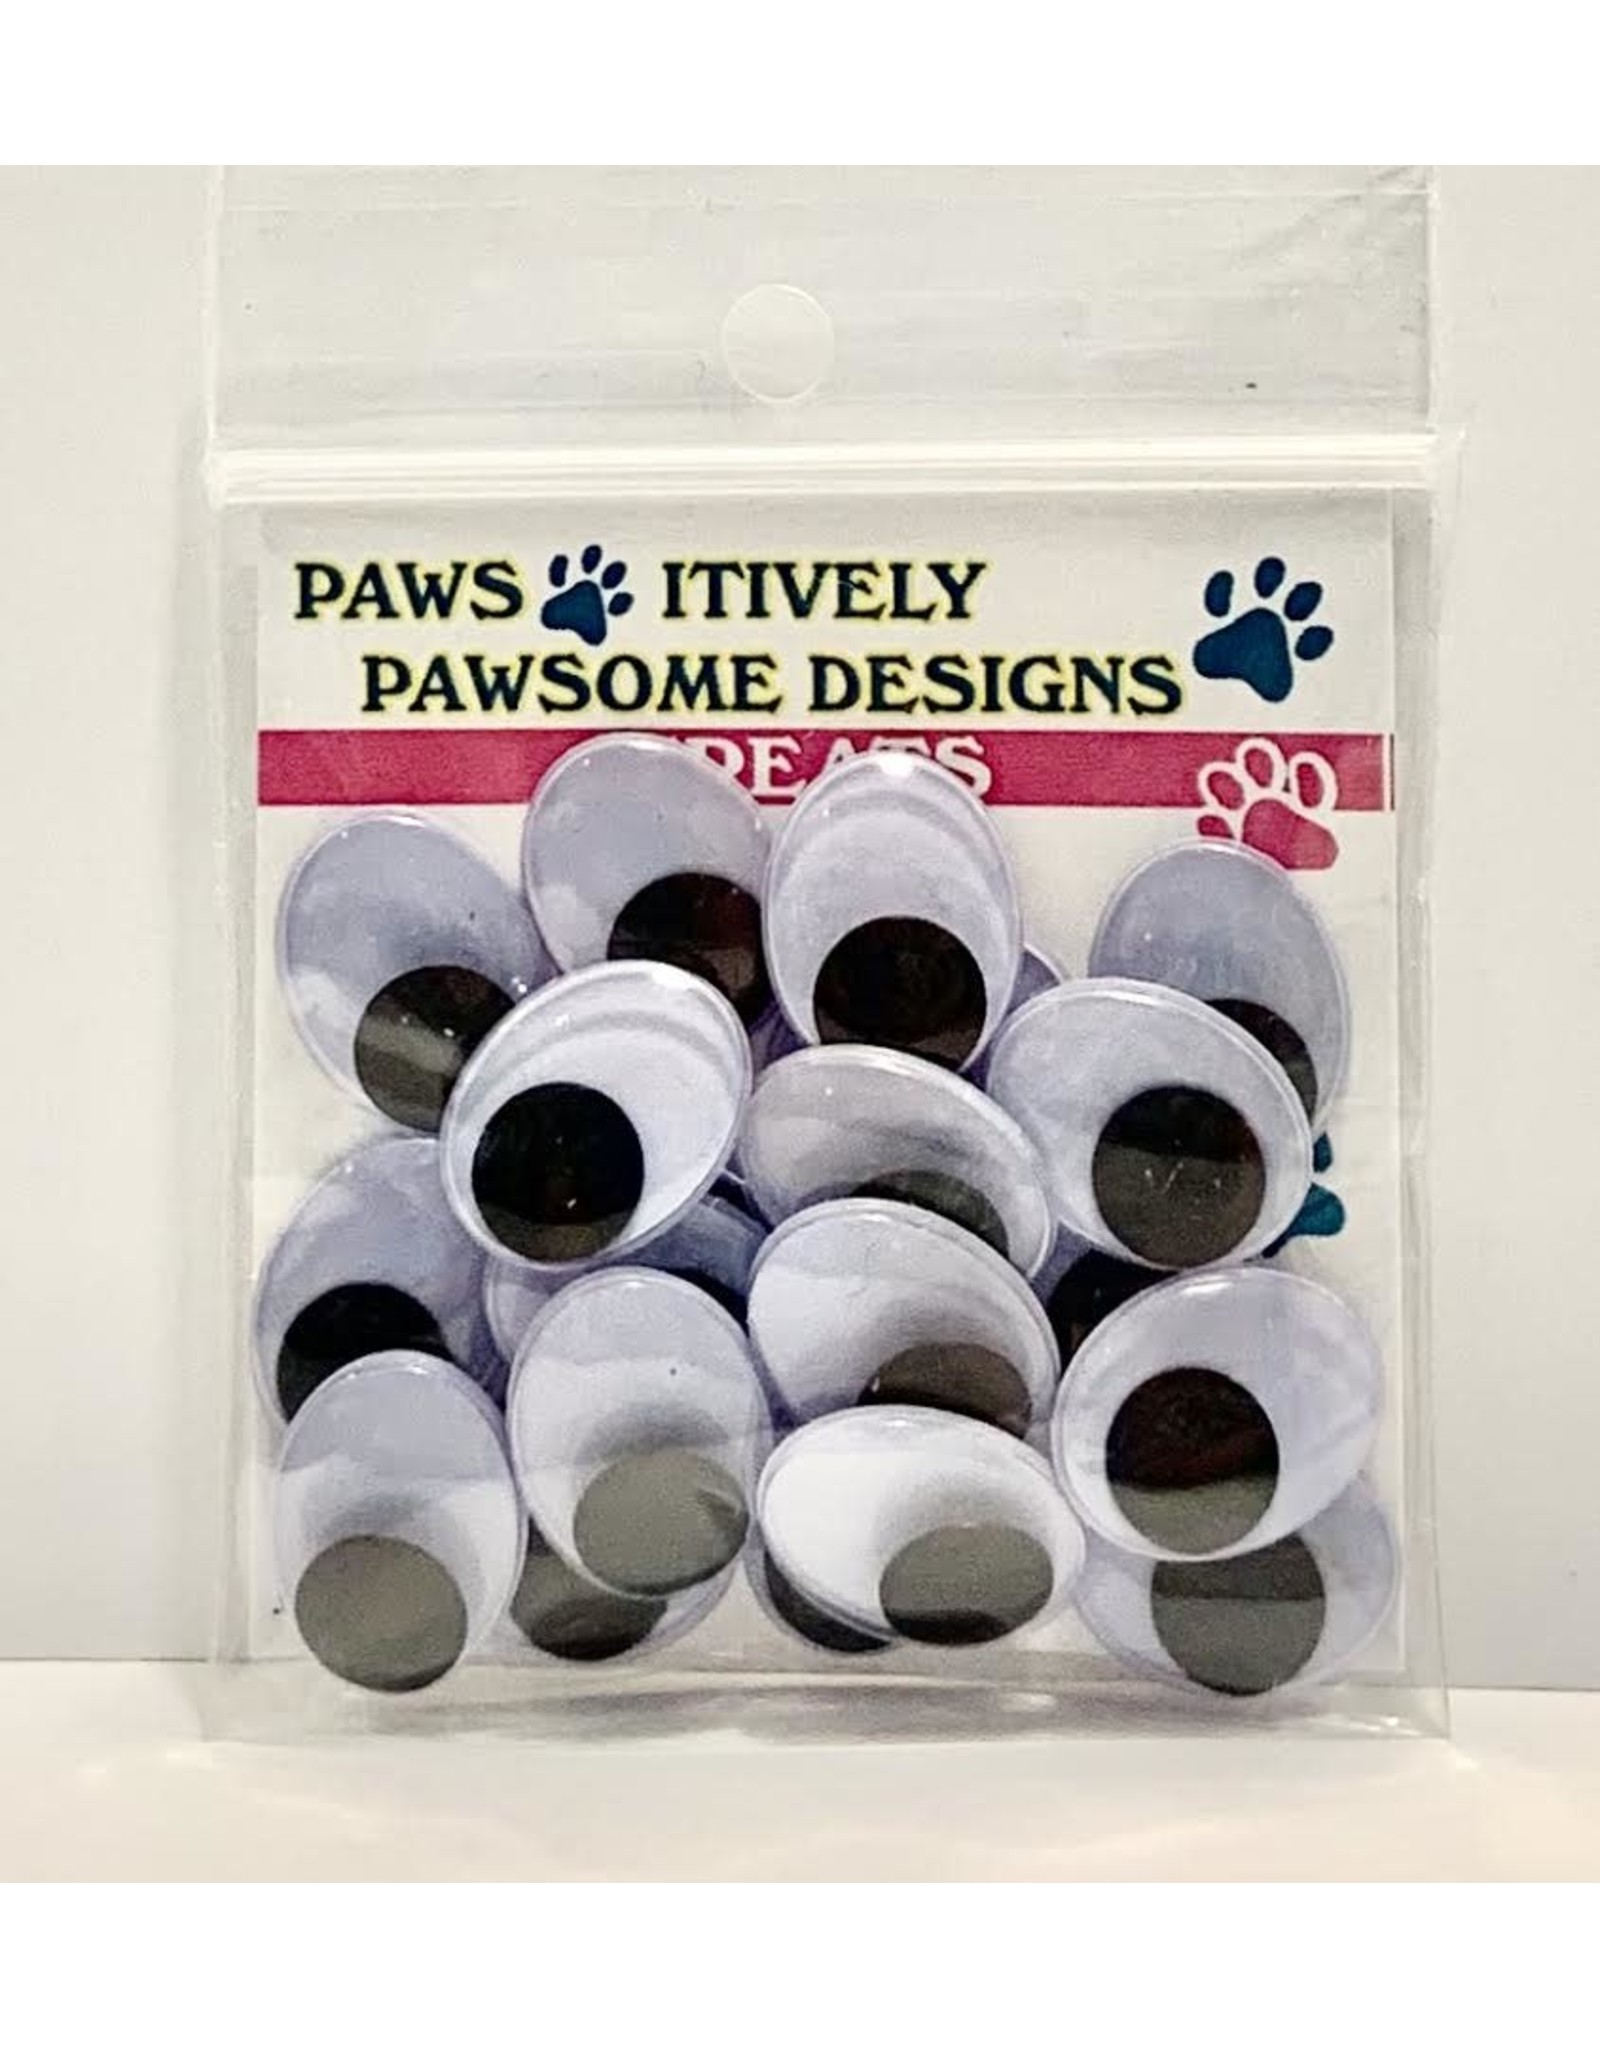 Paws-Itively Pawsome Designs Wiggle Eyes (Oval) - 18mm (Qty 20)